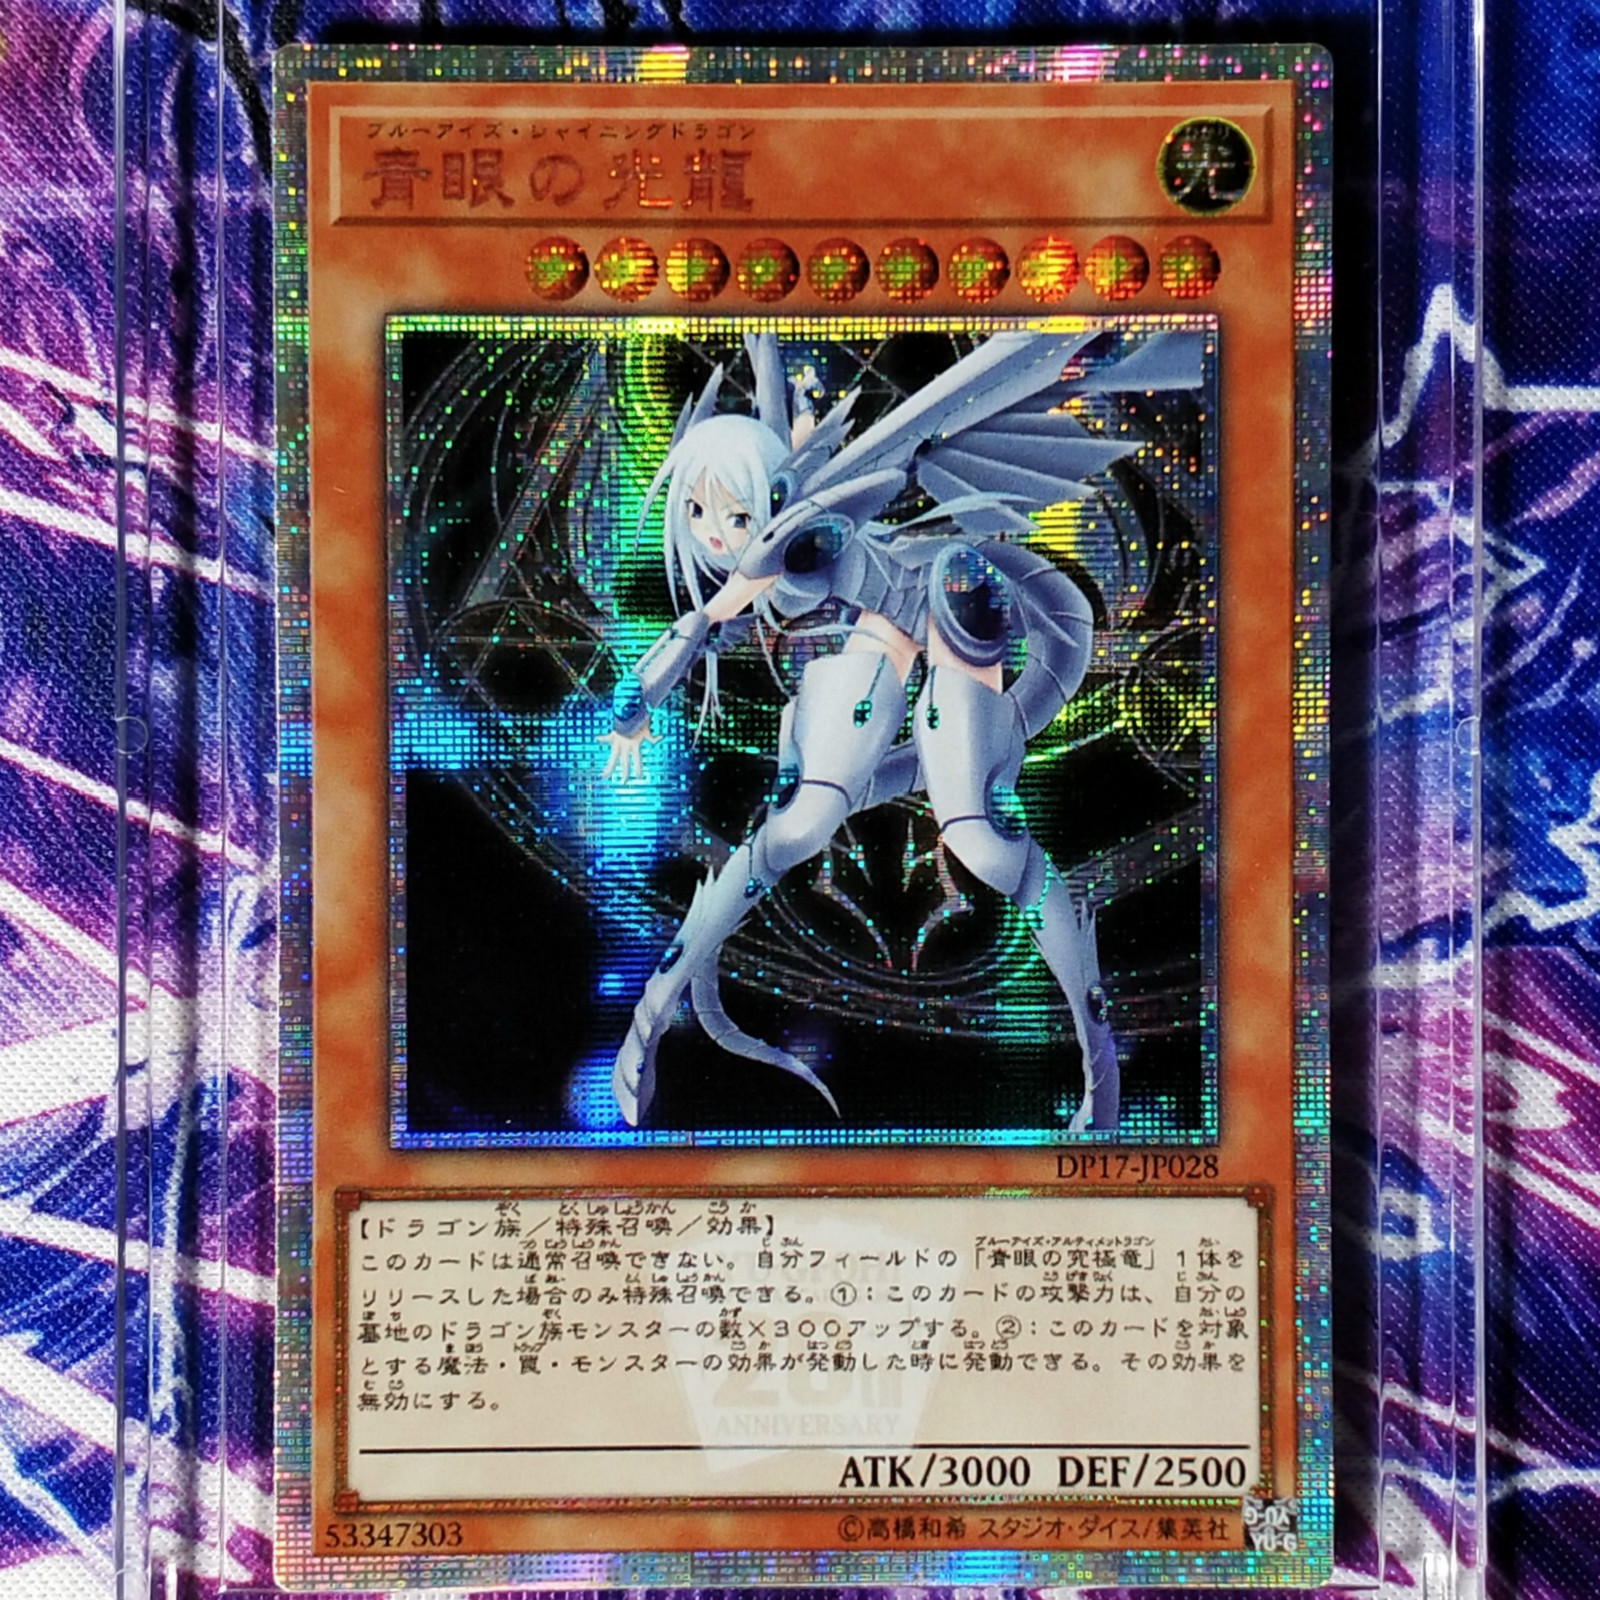 Yu Gi Oh DIY Blue-Eyes Shining Dragon Colorful Toys Hobbies Hobby Collectibles Game Collection Anime Cards